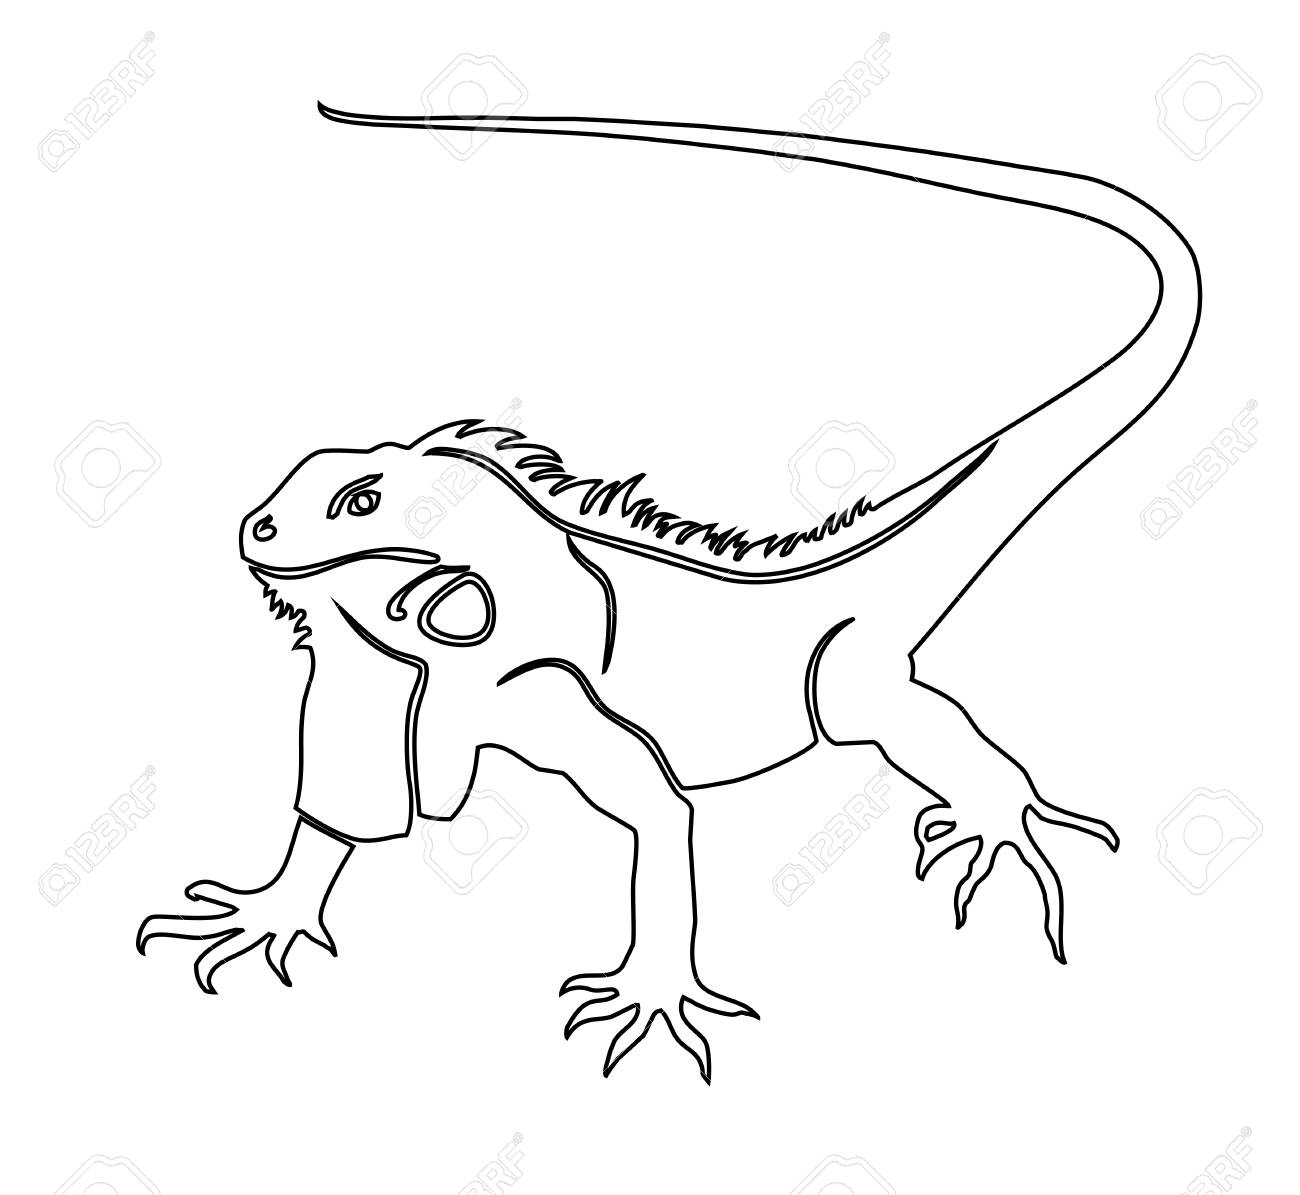 Iguana. Coloring Book Vector Illustration Royalty Free Cliparts ...